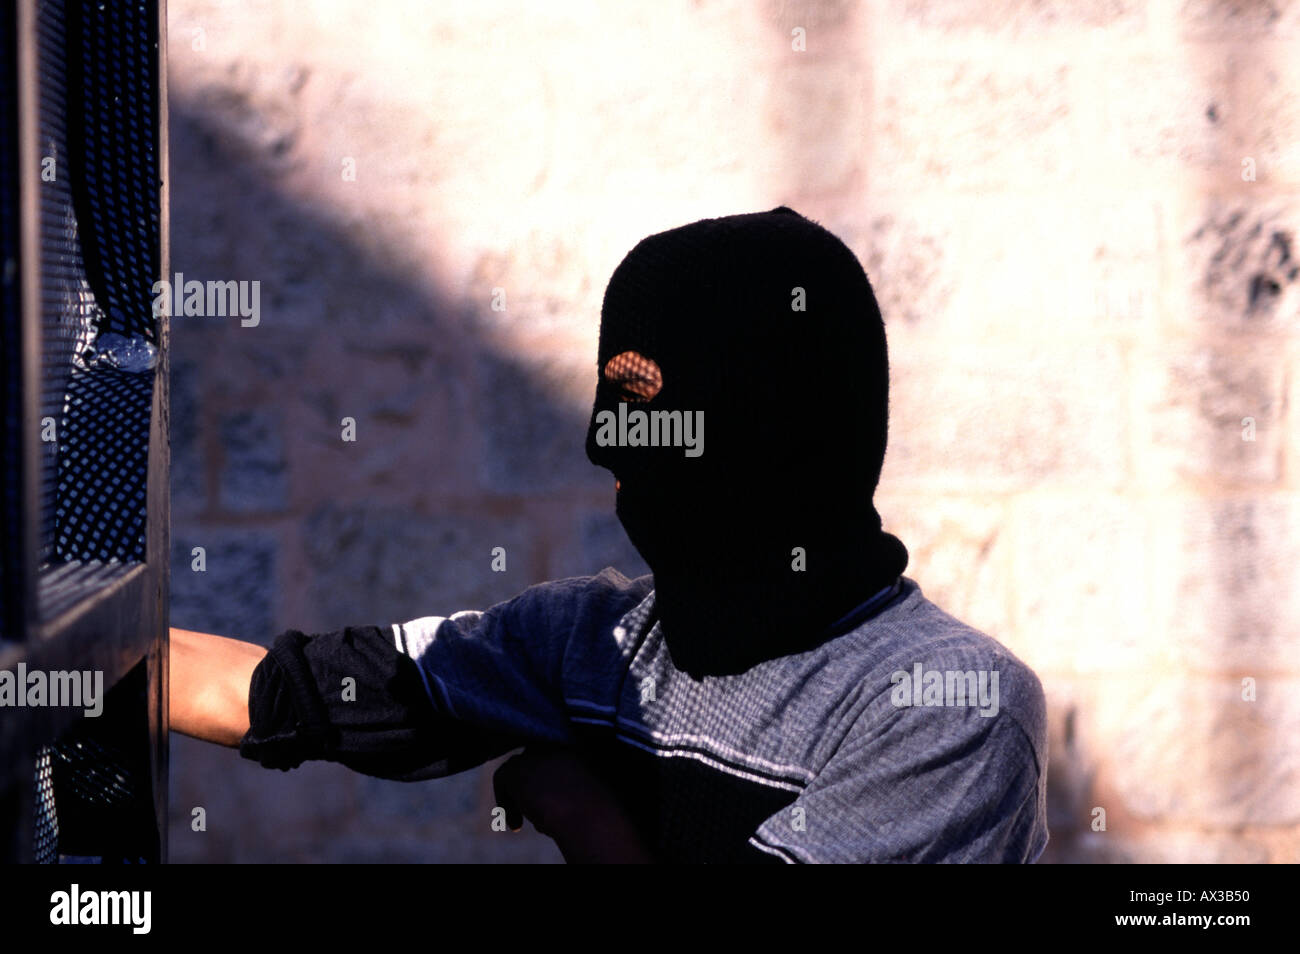 Palestinian during the Intifada riots in East Jerusalem Israel - Stock Image